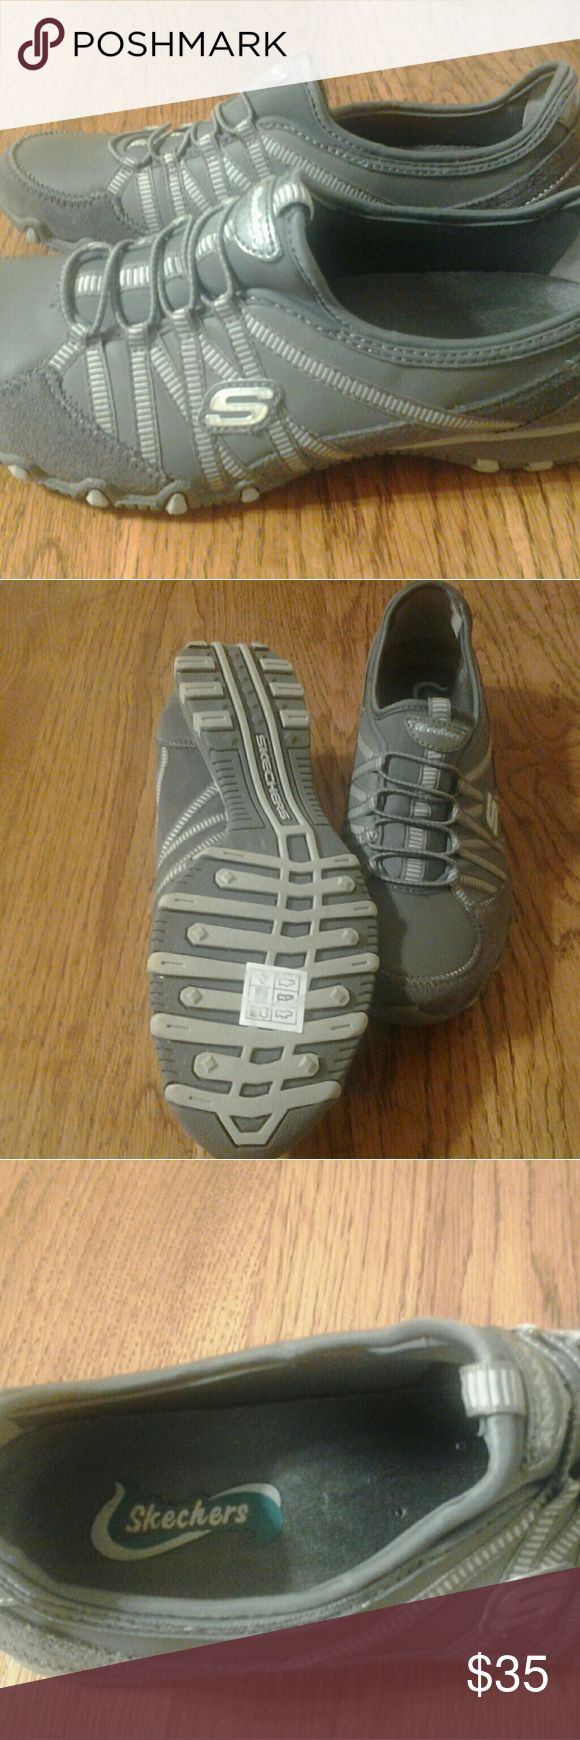 SKECKERS NEW LADIES  SHOES SIZE 8.5 II HAVE A BRAND NEW PAIR OF LADIES SKECKERS FOR SALE, SIZE 8 .5.  I GOT THEM FOR CHRISTMAS AND THEY WERE TO  BIG. Skechers Shoes